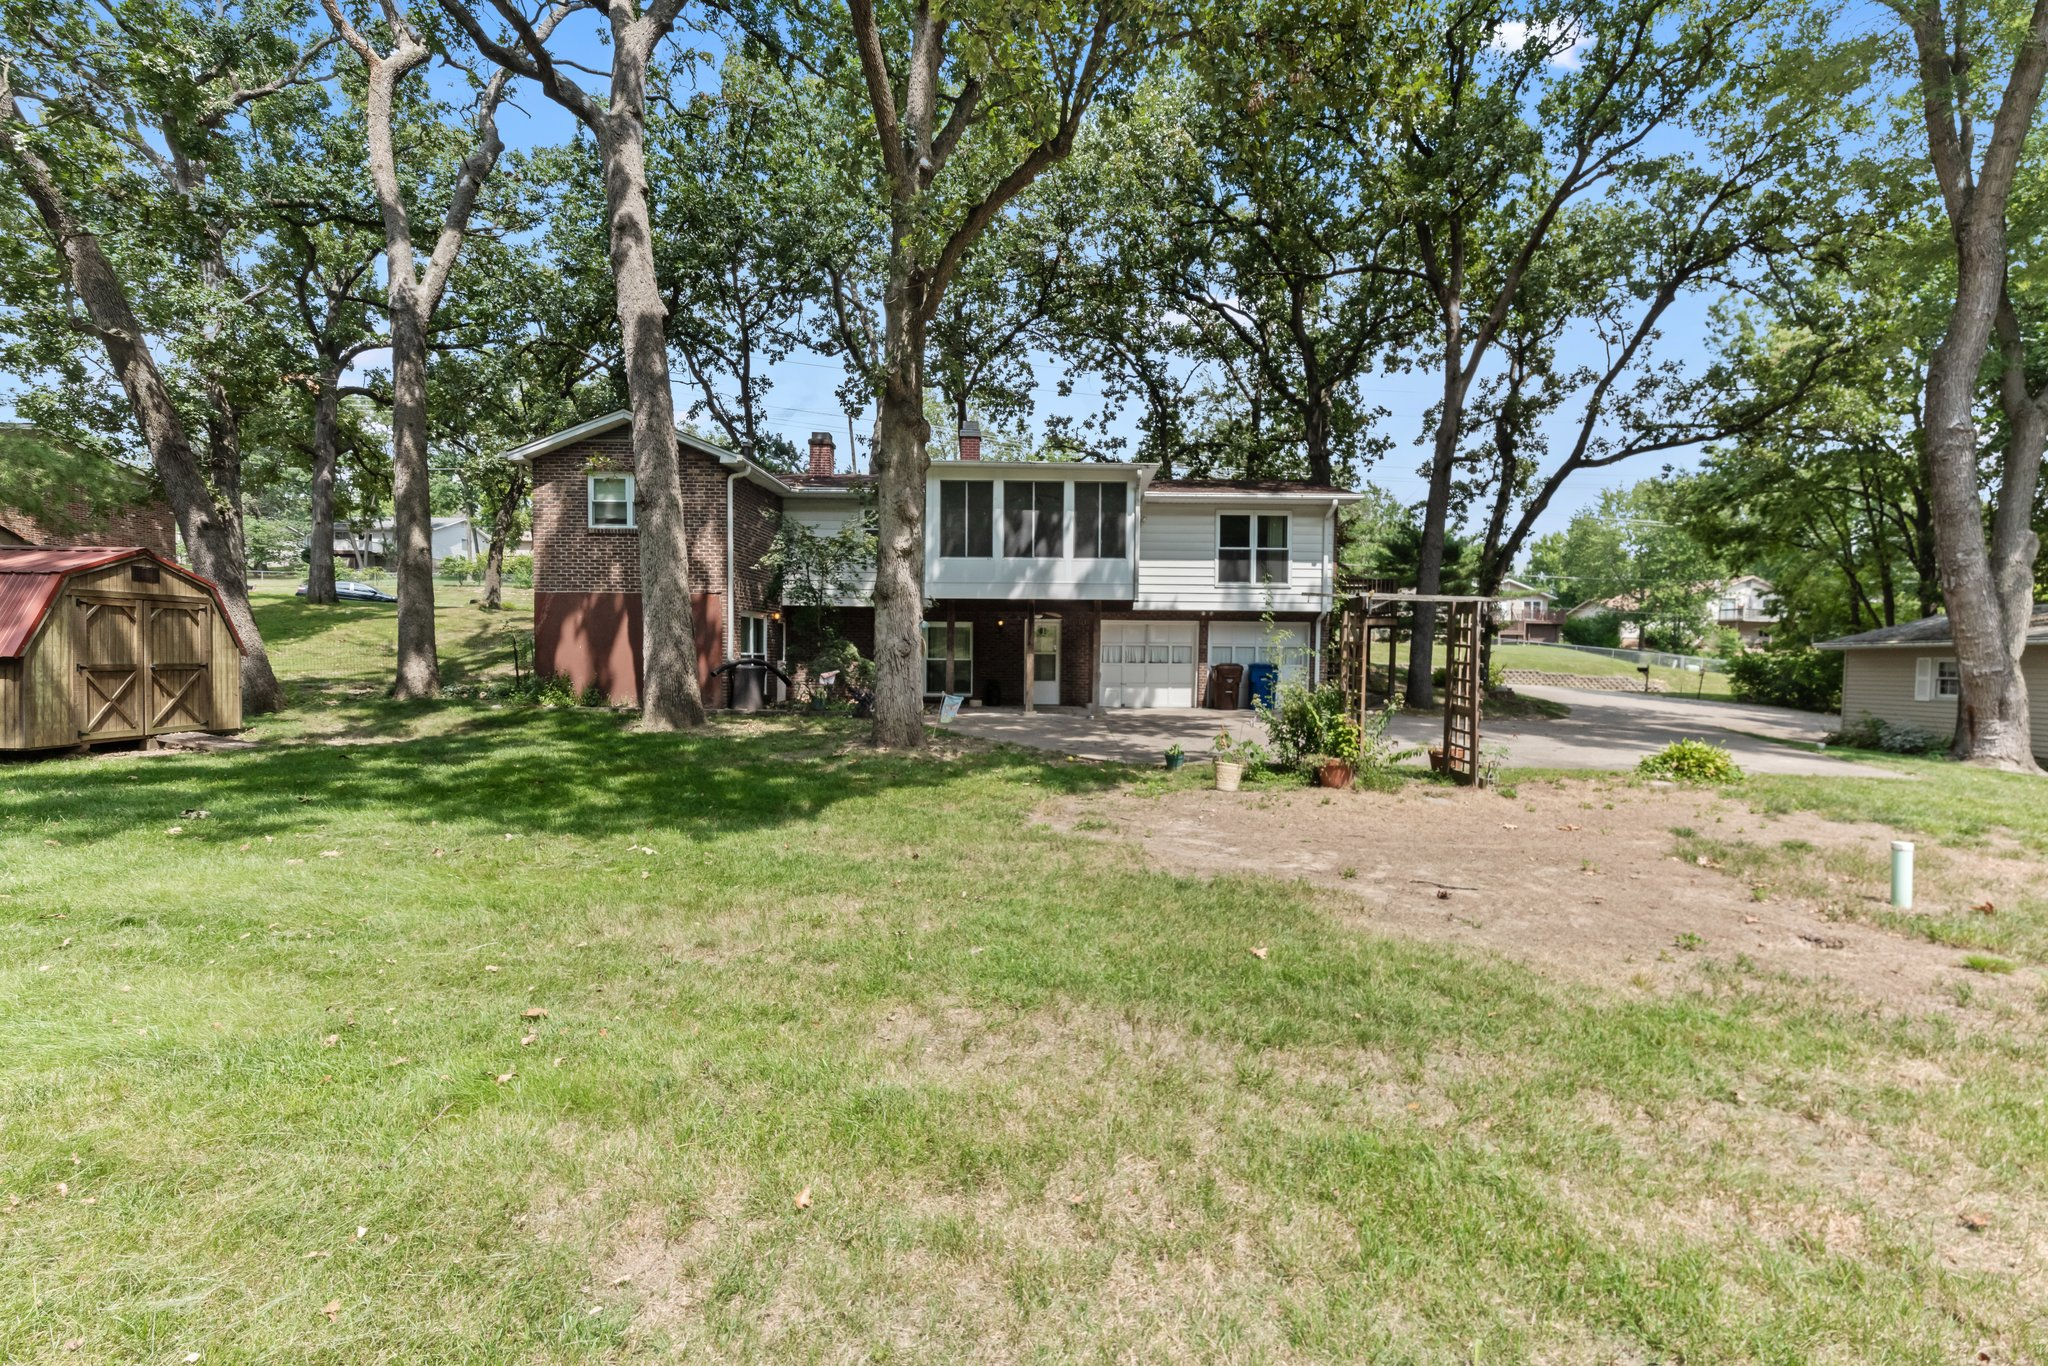 3158 McClay Rd, St Peters, MO 63376, USA Photo 34